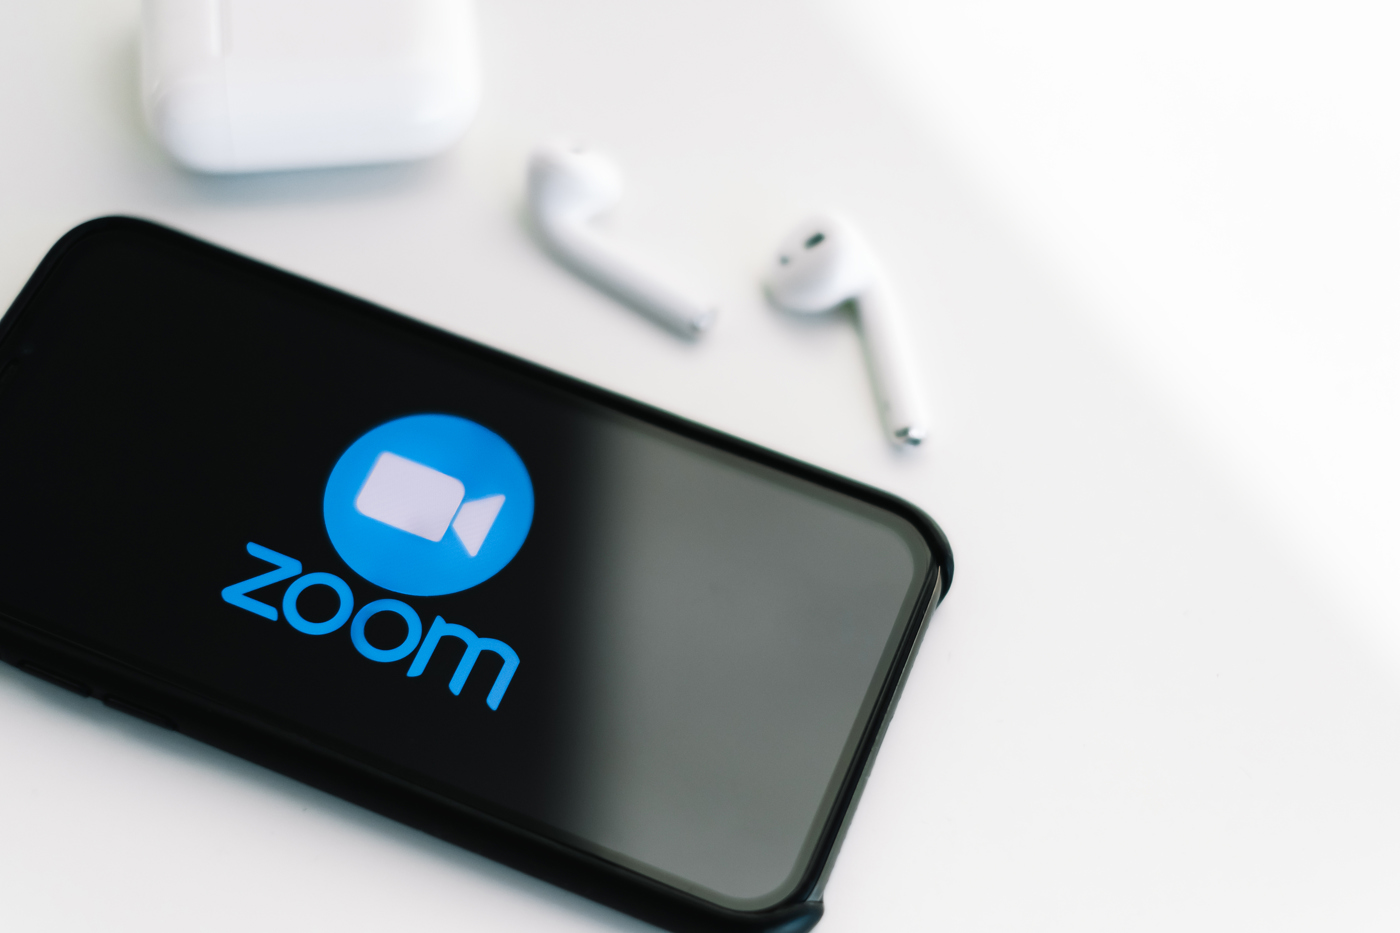 Zoom Communications ZM stock news and analysis